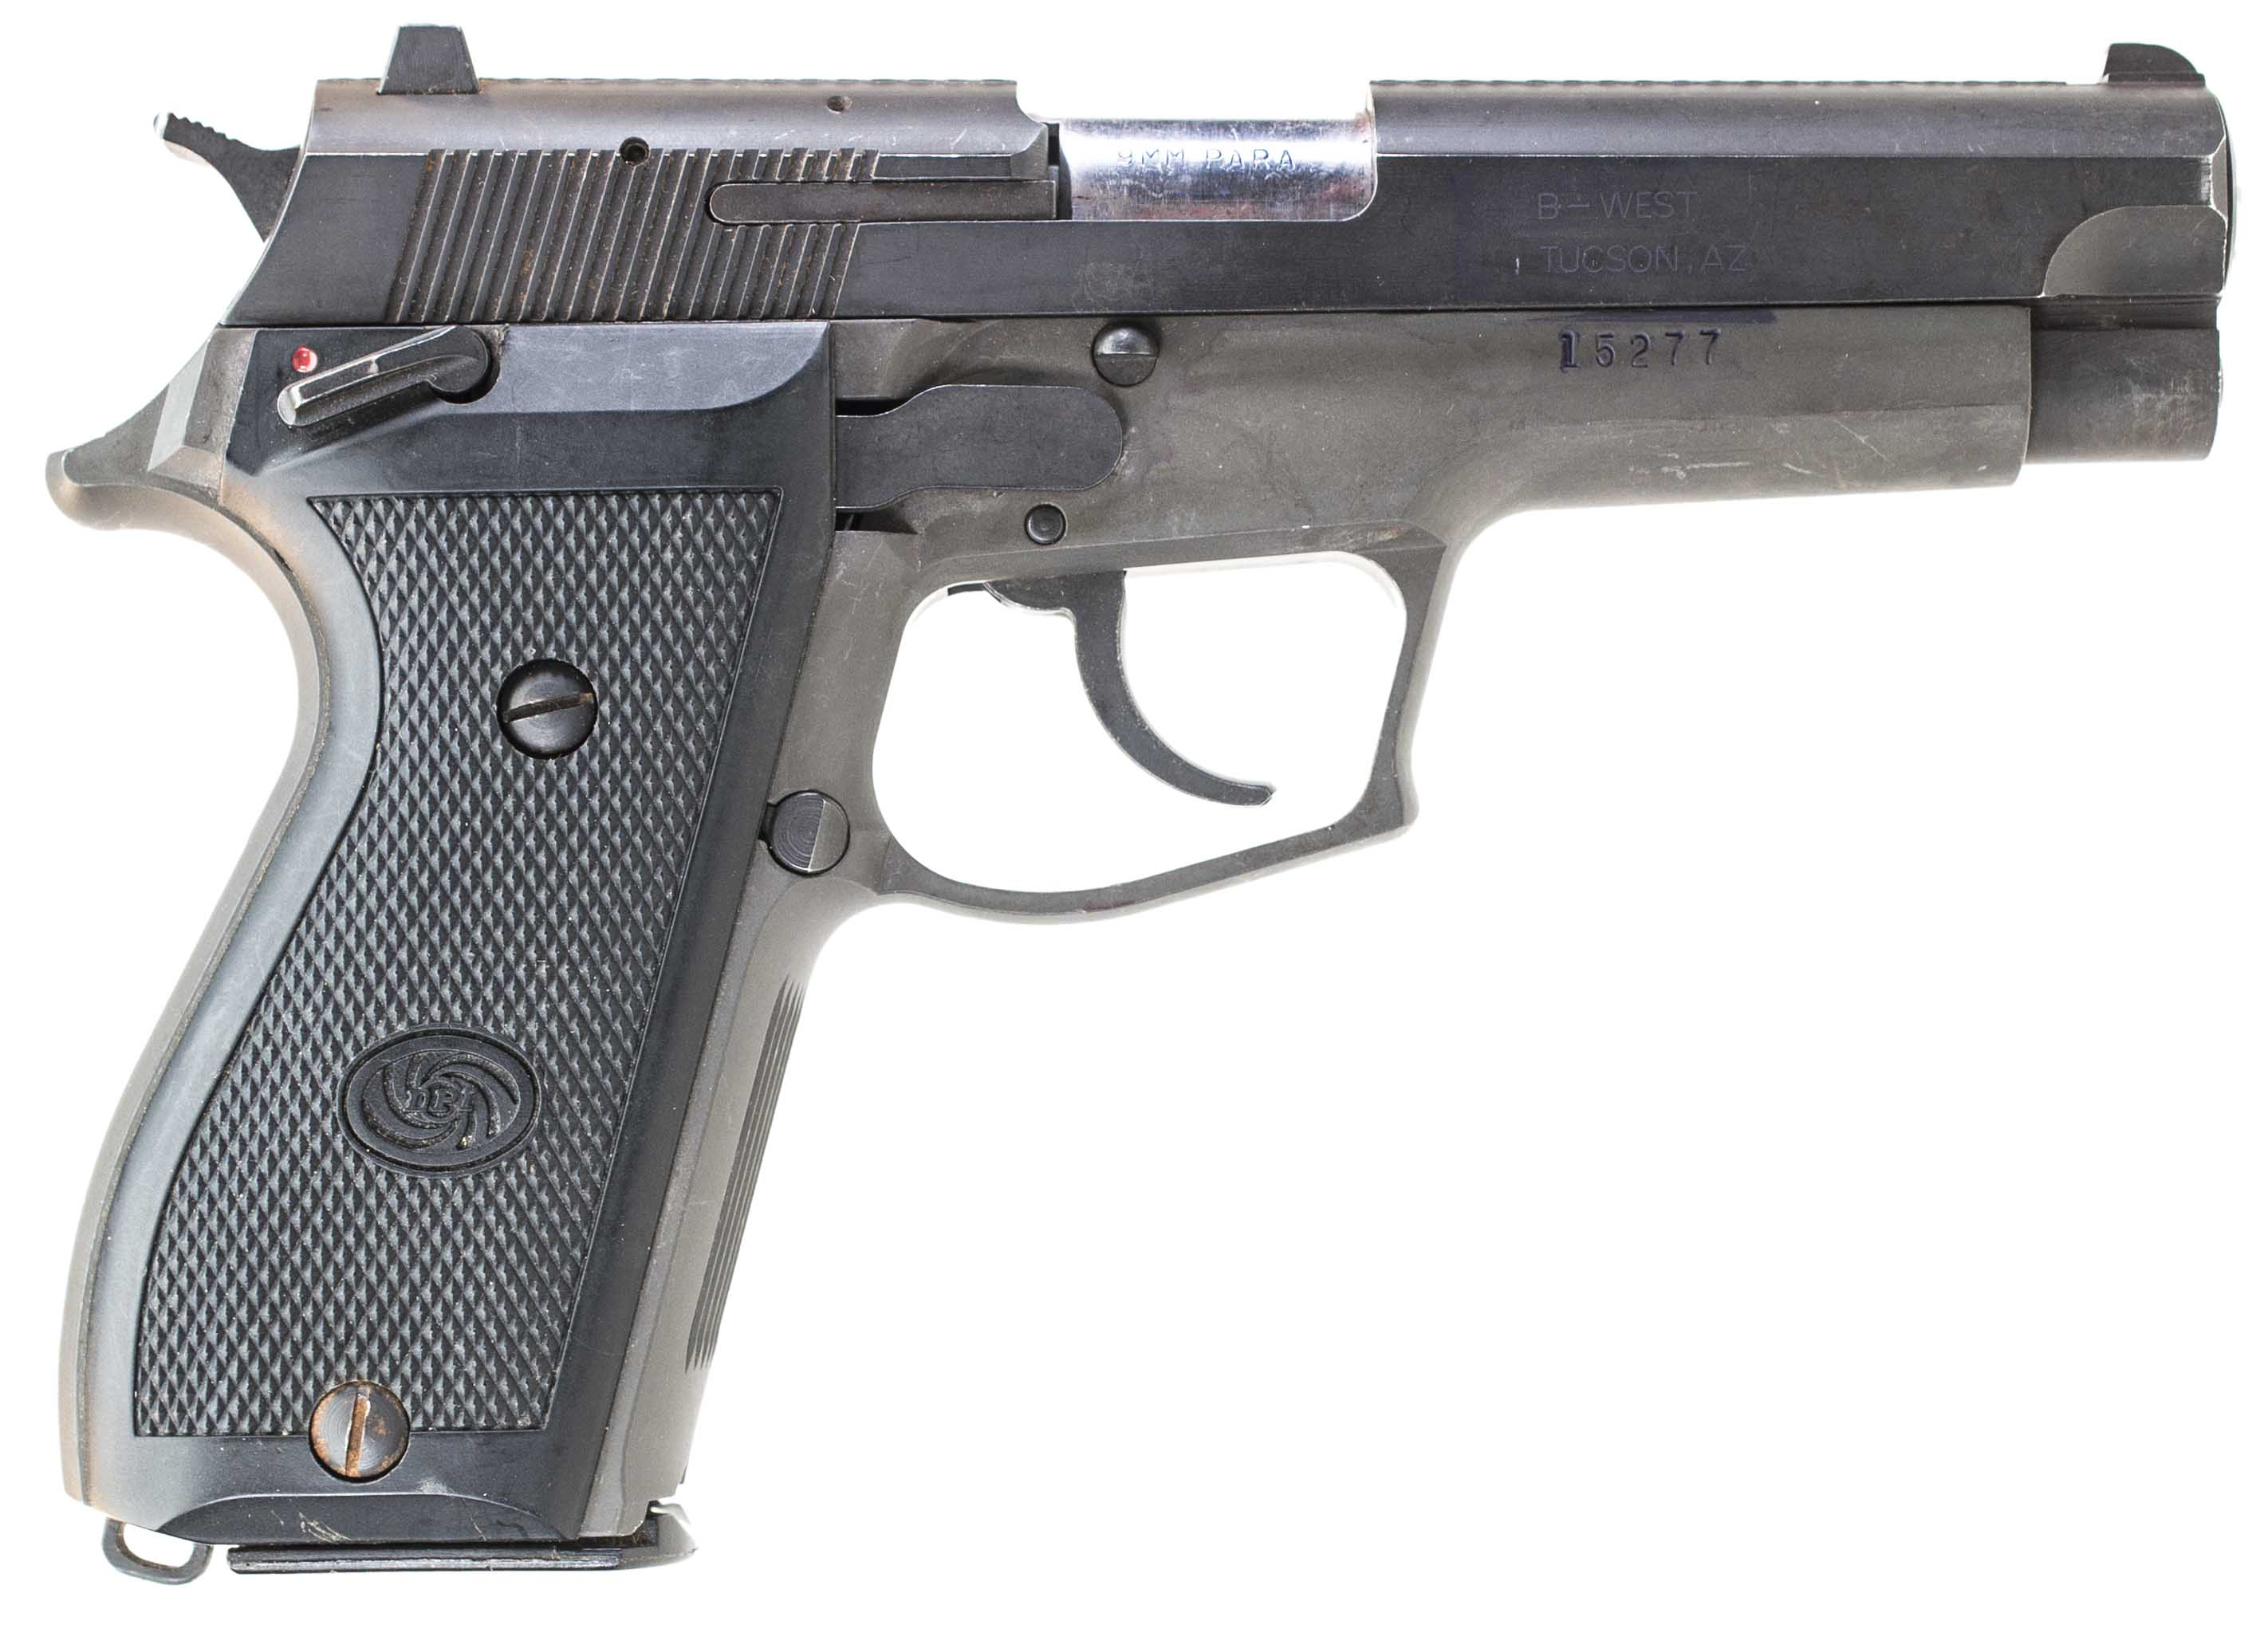 DAEWOO DP51 9MM (Auction ID: 5381592, End Time : Sep. 23, 2016 22:00